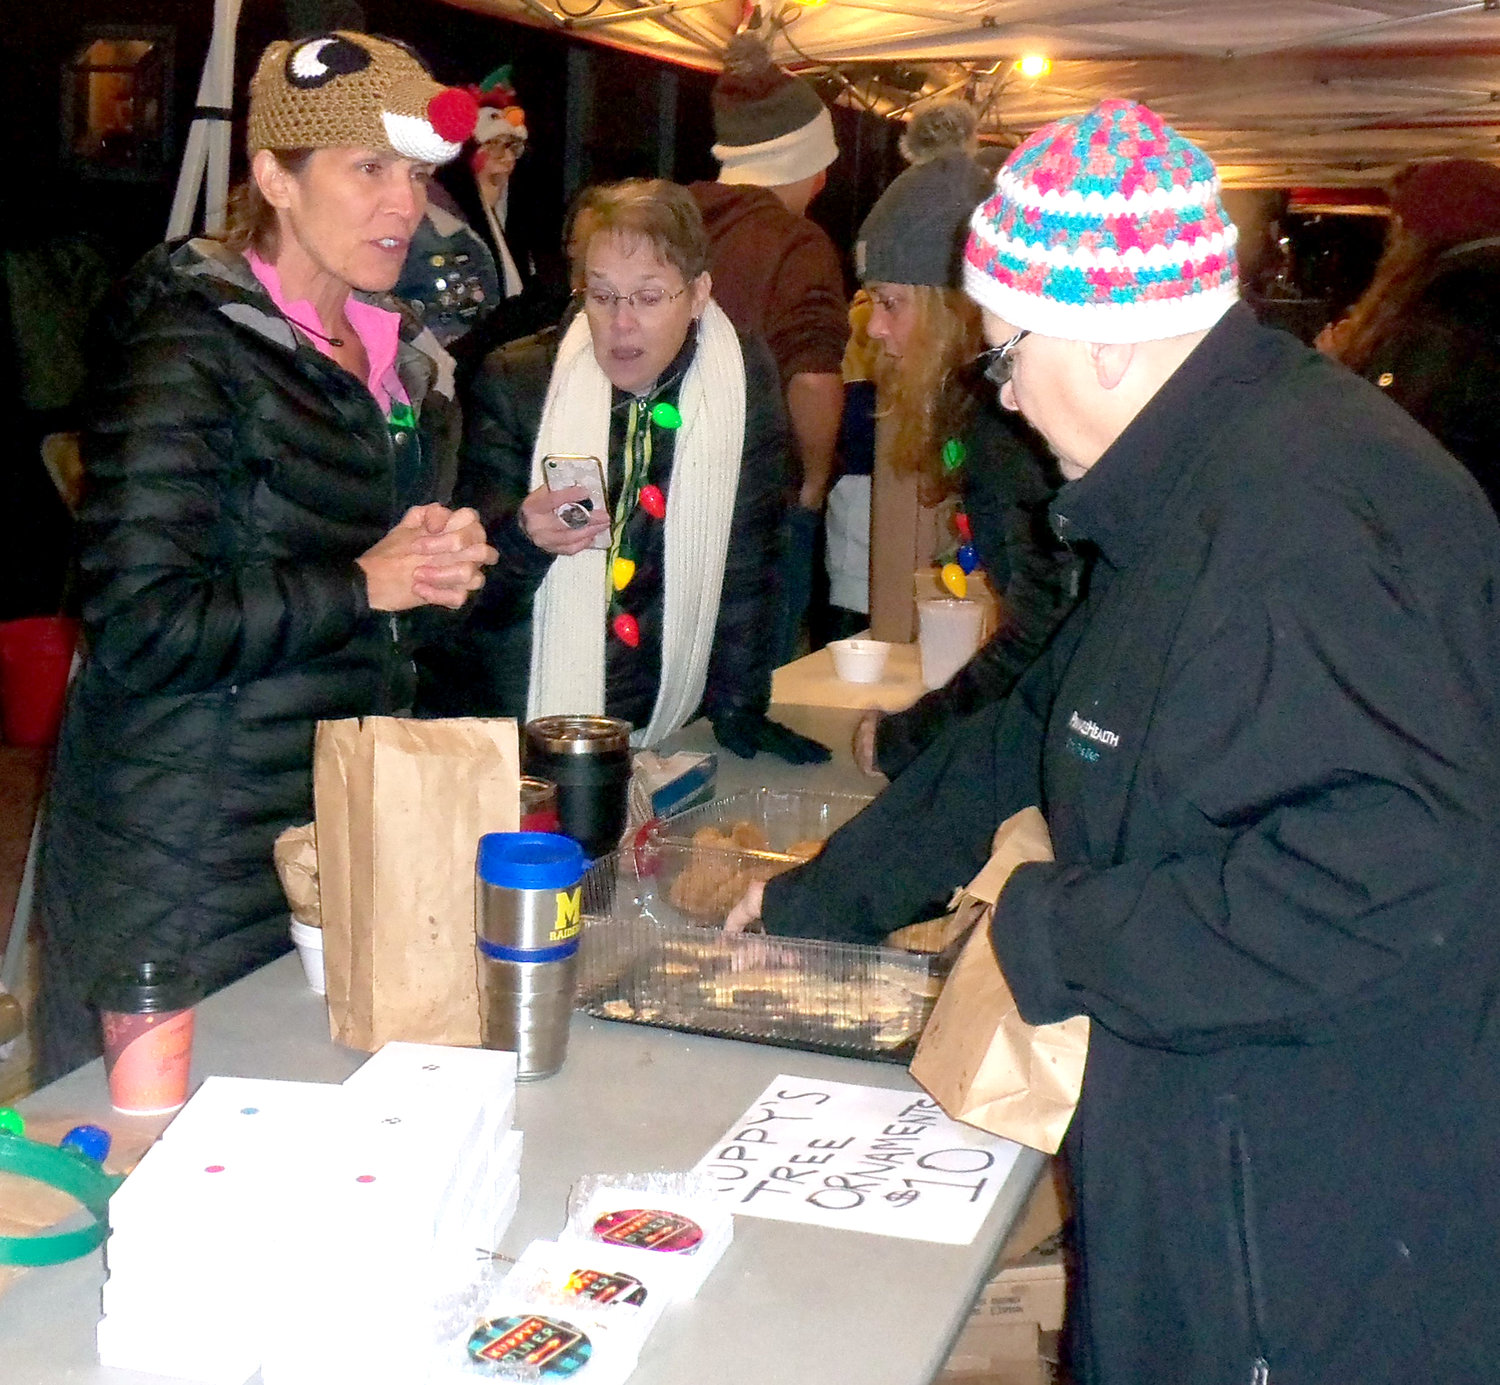 Kuppy's Diner co-owner Carol Kupp, left, and a Kuppy's crew of volunteers gave out free cookies, hot soup and hot coffee to the crowd at Middletown borough's Christmas tree-lighting ceremony Saturday, Nov. 30.